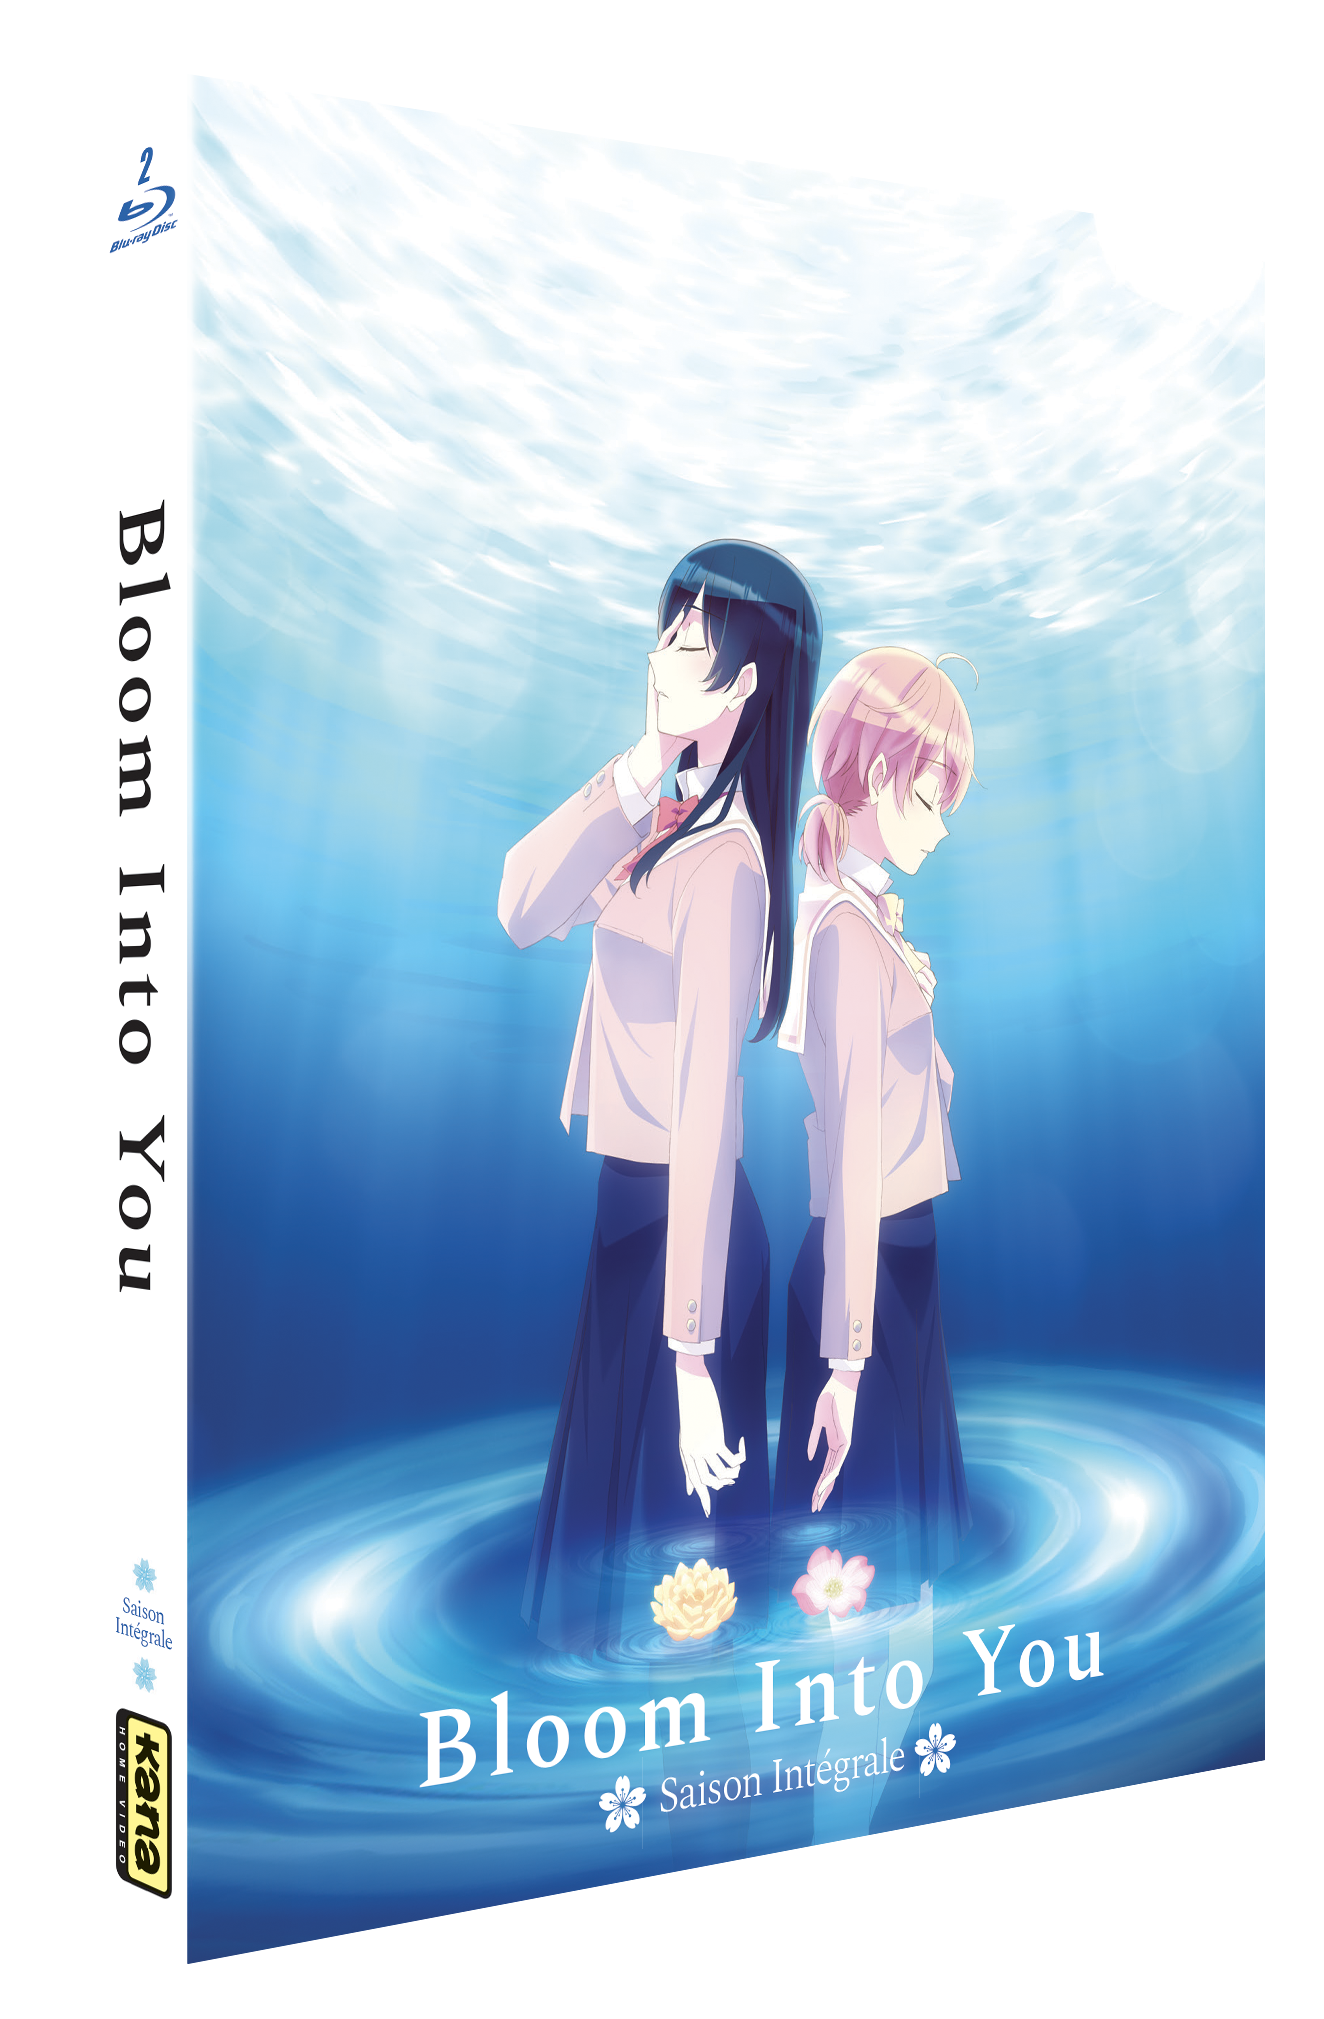 Bloom Into You - Intégrale Blu-ray